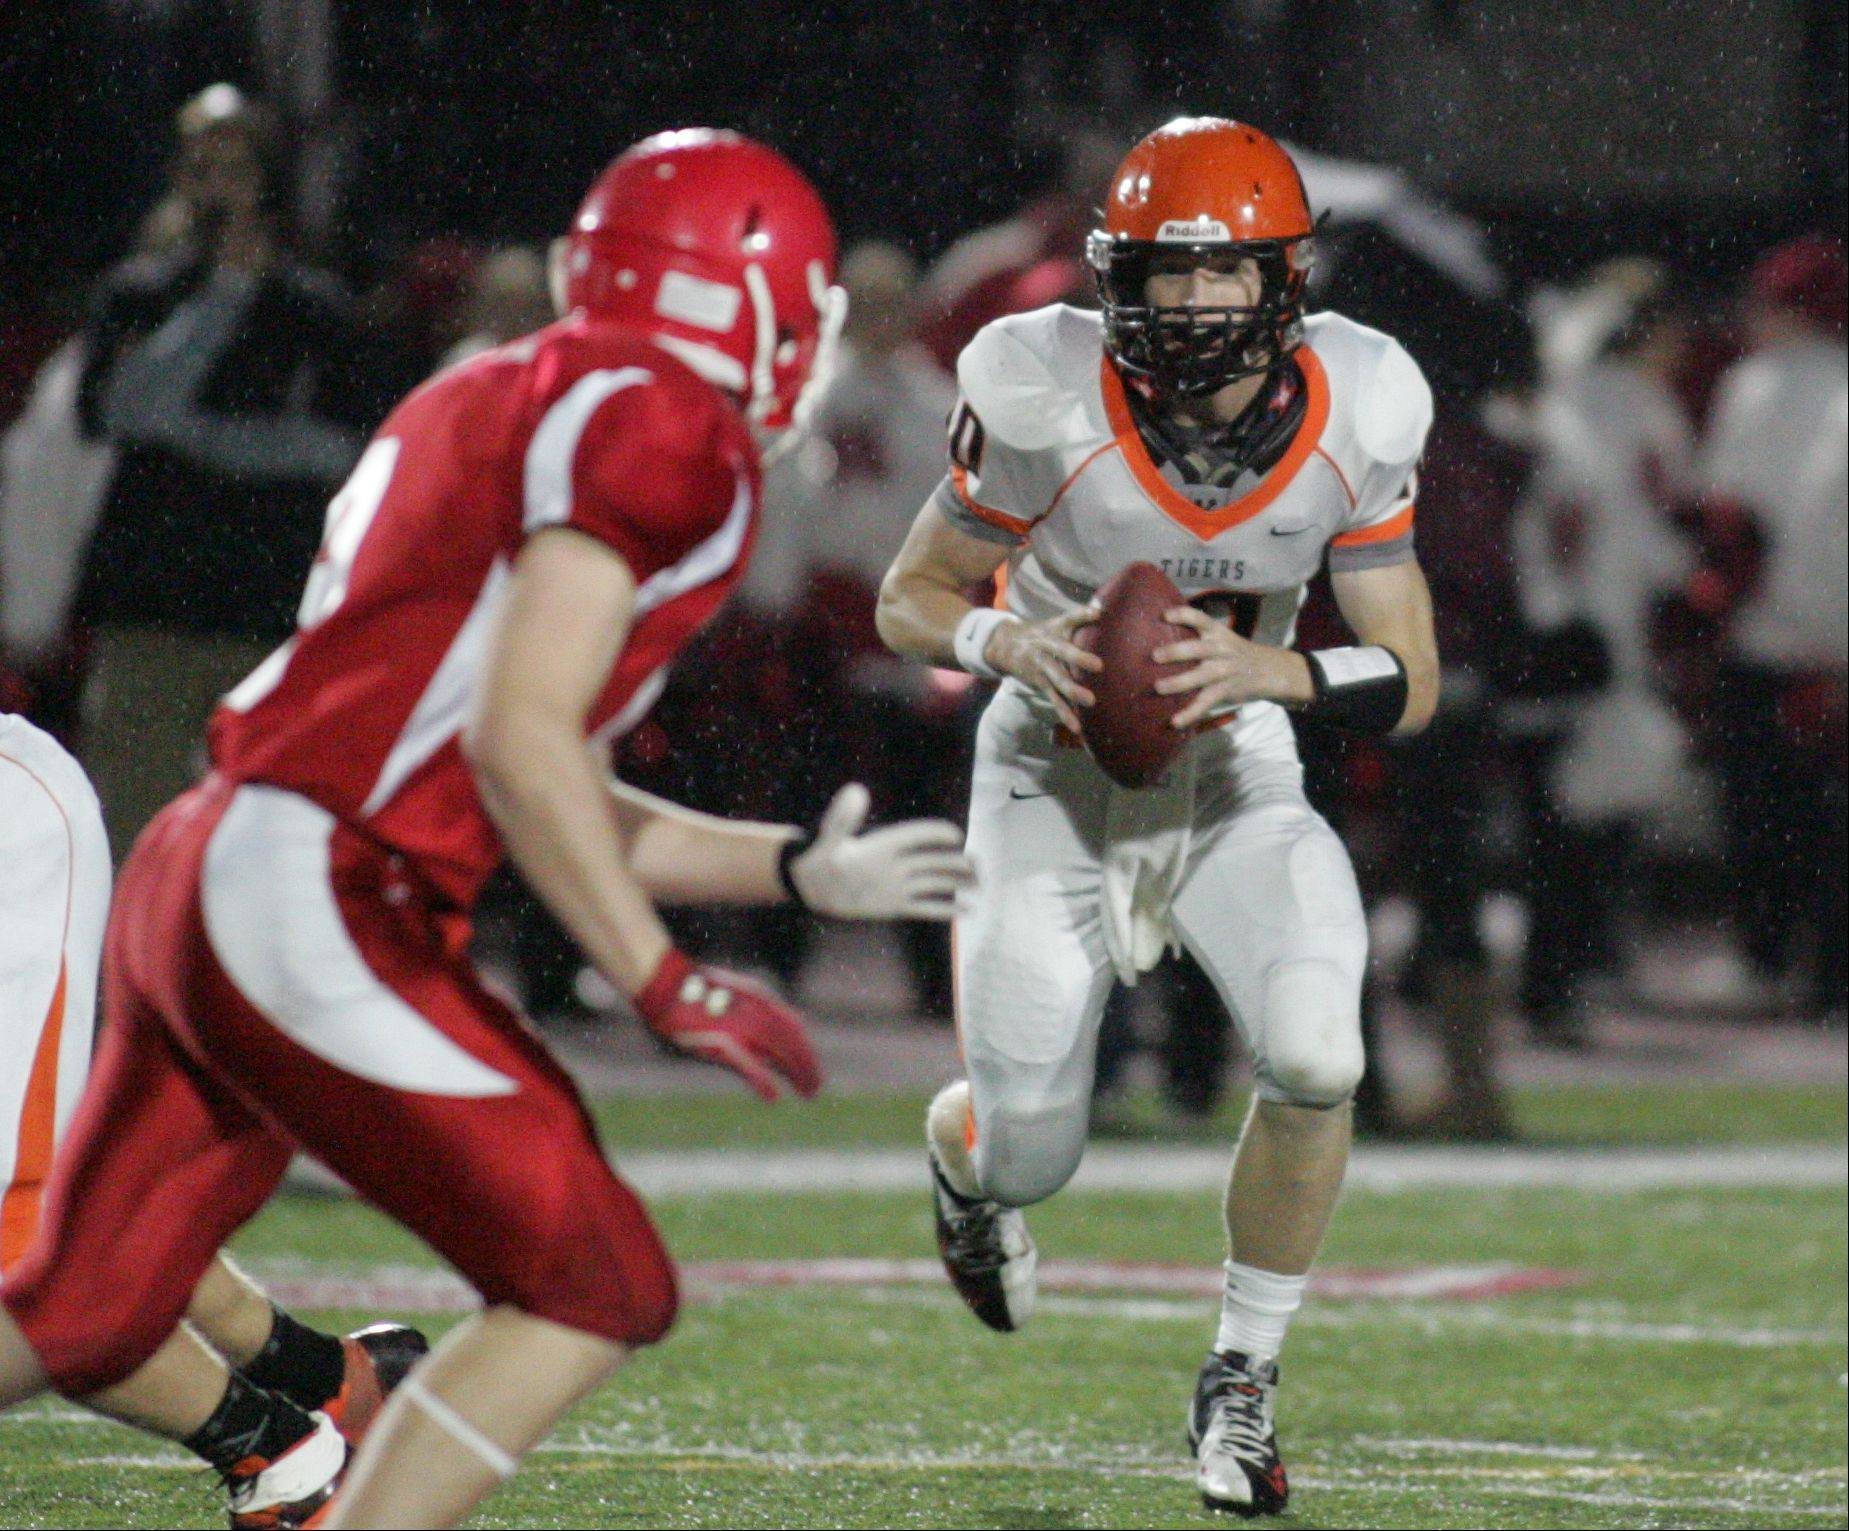 Photos from the Wheaton Warrenville South at Naperville Central football game Friday, September 21.